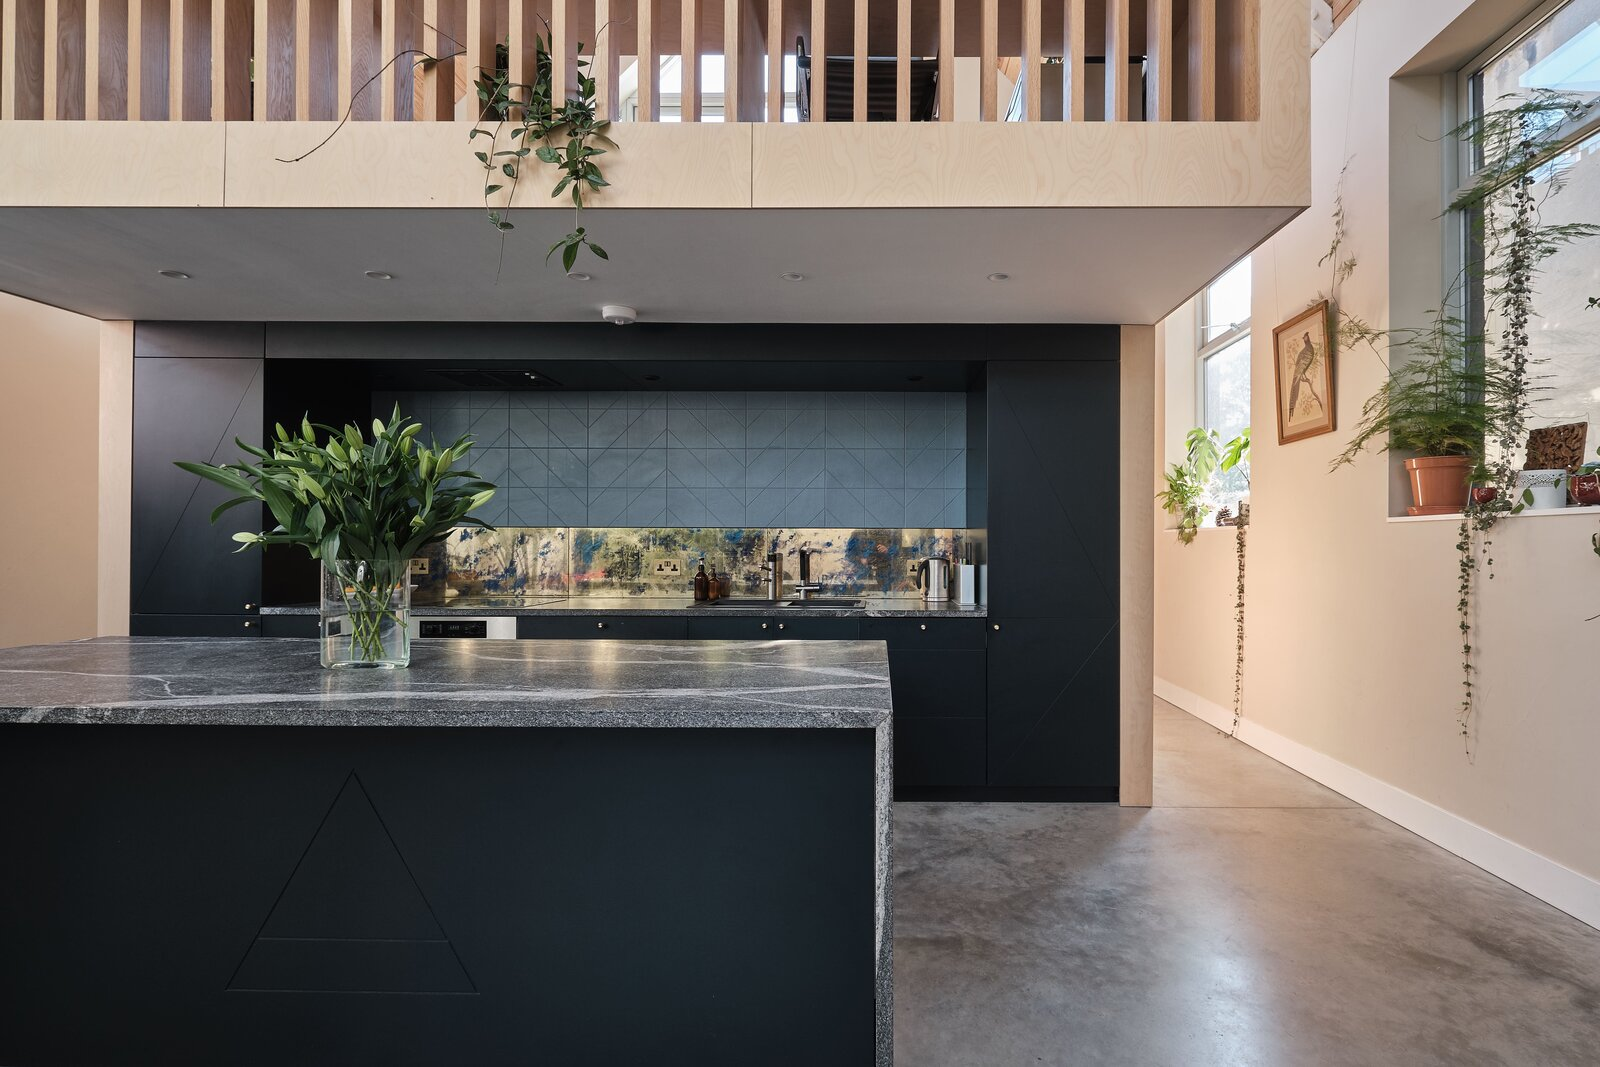 """The mezzanine cantilevers over the kitchen. """"The material palette of oak, birch plywood, oiled pine and stone add a textural richness to the space which balance the interventions against the simplicity of the original building,  Photo 5 of 14 in This Former Chapel, Now a Heavenly Artist's Studio and Home, Lists for £1.6M"""